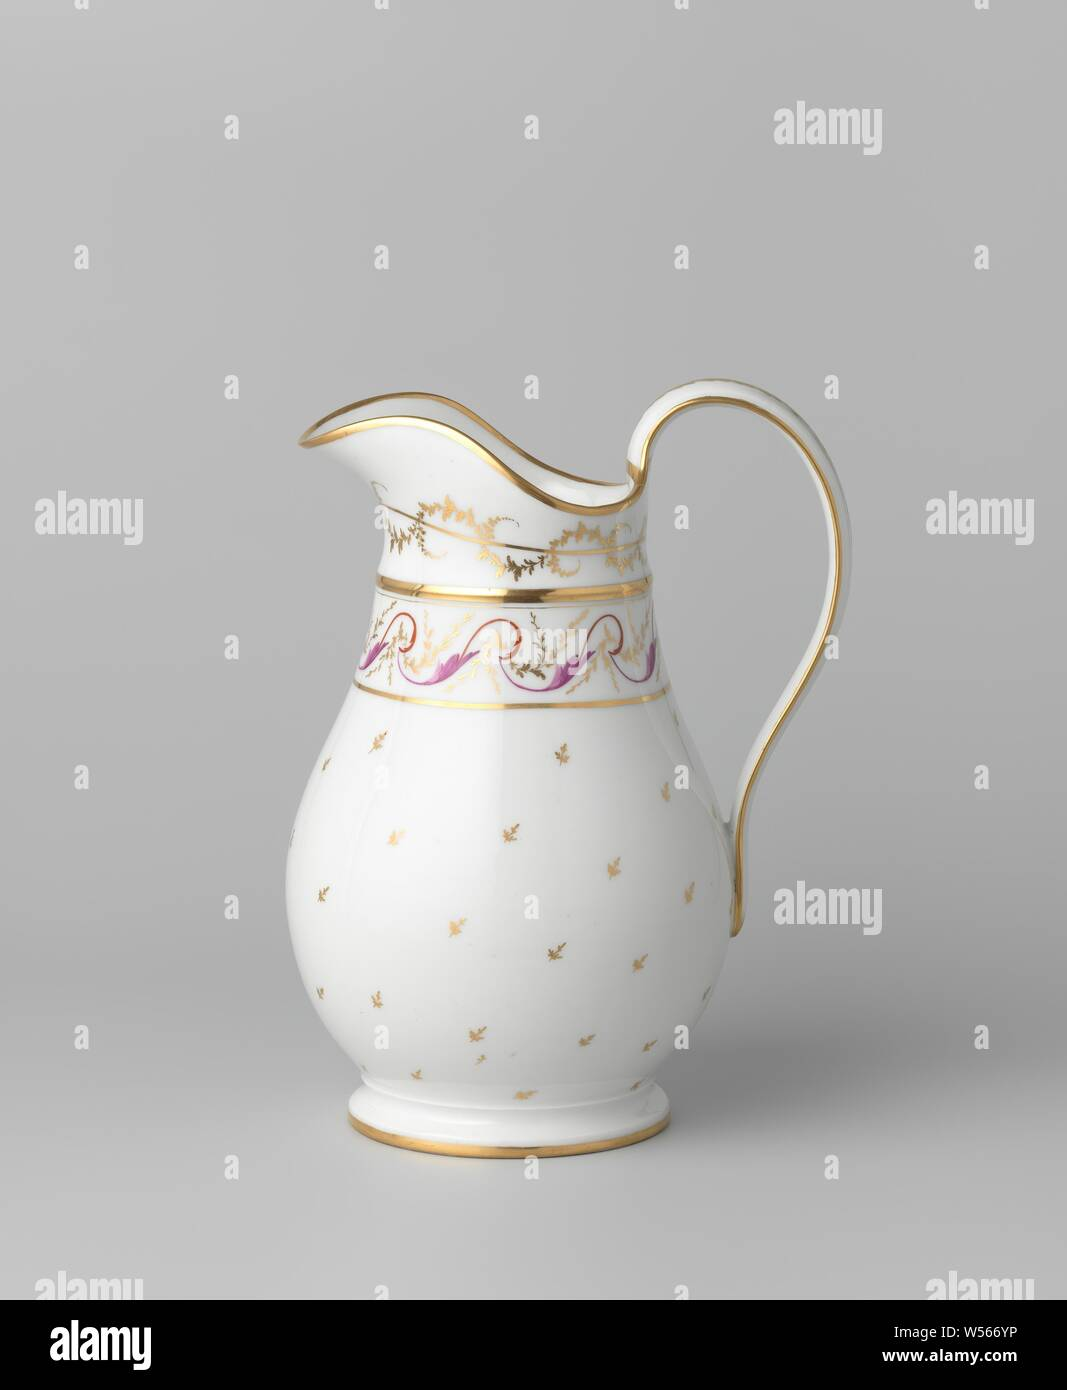 Ewer with floral scrolls and flower sprigs, Porcelain jug on a spreading base, with a pear-shaped body, high ear and broad pouring rim. Painted on the glaze in red, purple and gold. Flowers on the belly. The neck with a band of golden lines with a flower vine in it. Below the edge a leaf vine billowing around a golden line. Leaf tendril on the ear and gold bands on the foot and rim. Marked on the bottom with 'B Potter 23' and E.B., Fabriek Dominique Denuelle, Paris, c. 1775 - c. 1799, porcelain (material), glaze, gold (metal), vitrification, h 31.2 cm w 13.7 cm d 18.2 cm d 13.5 cm w 23.5 cm Stock Photo